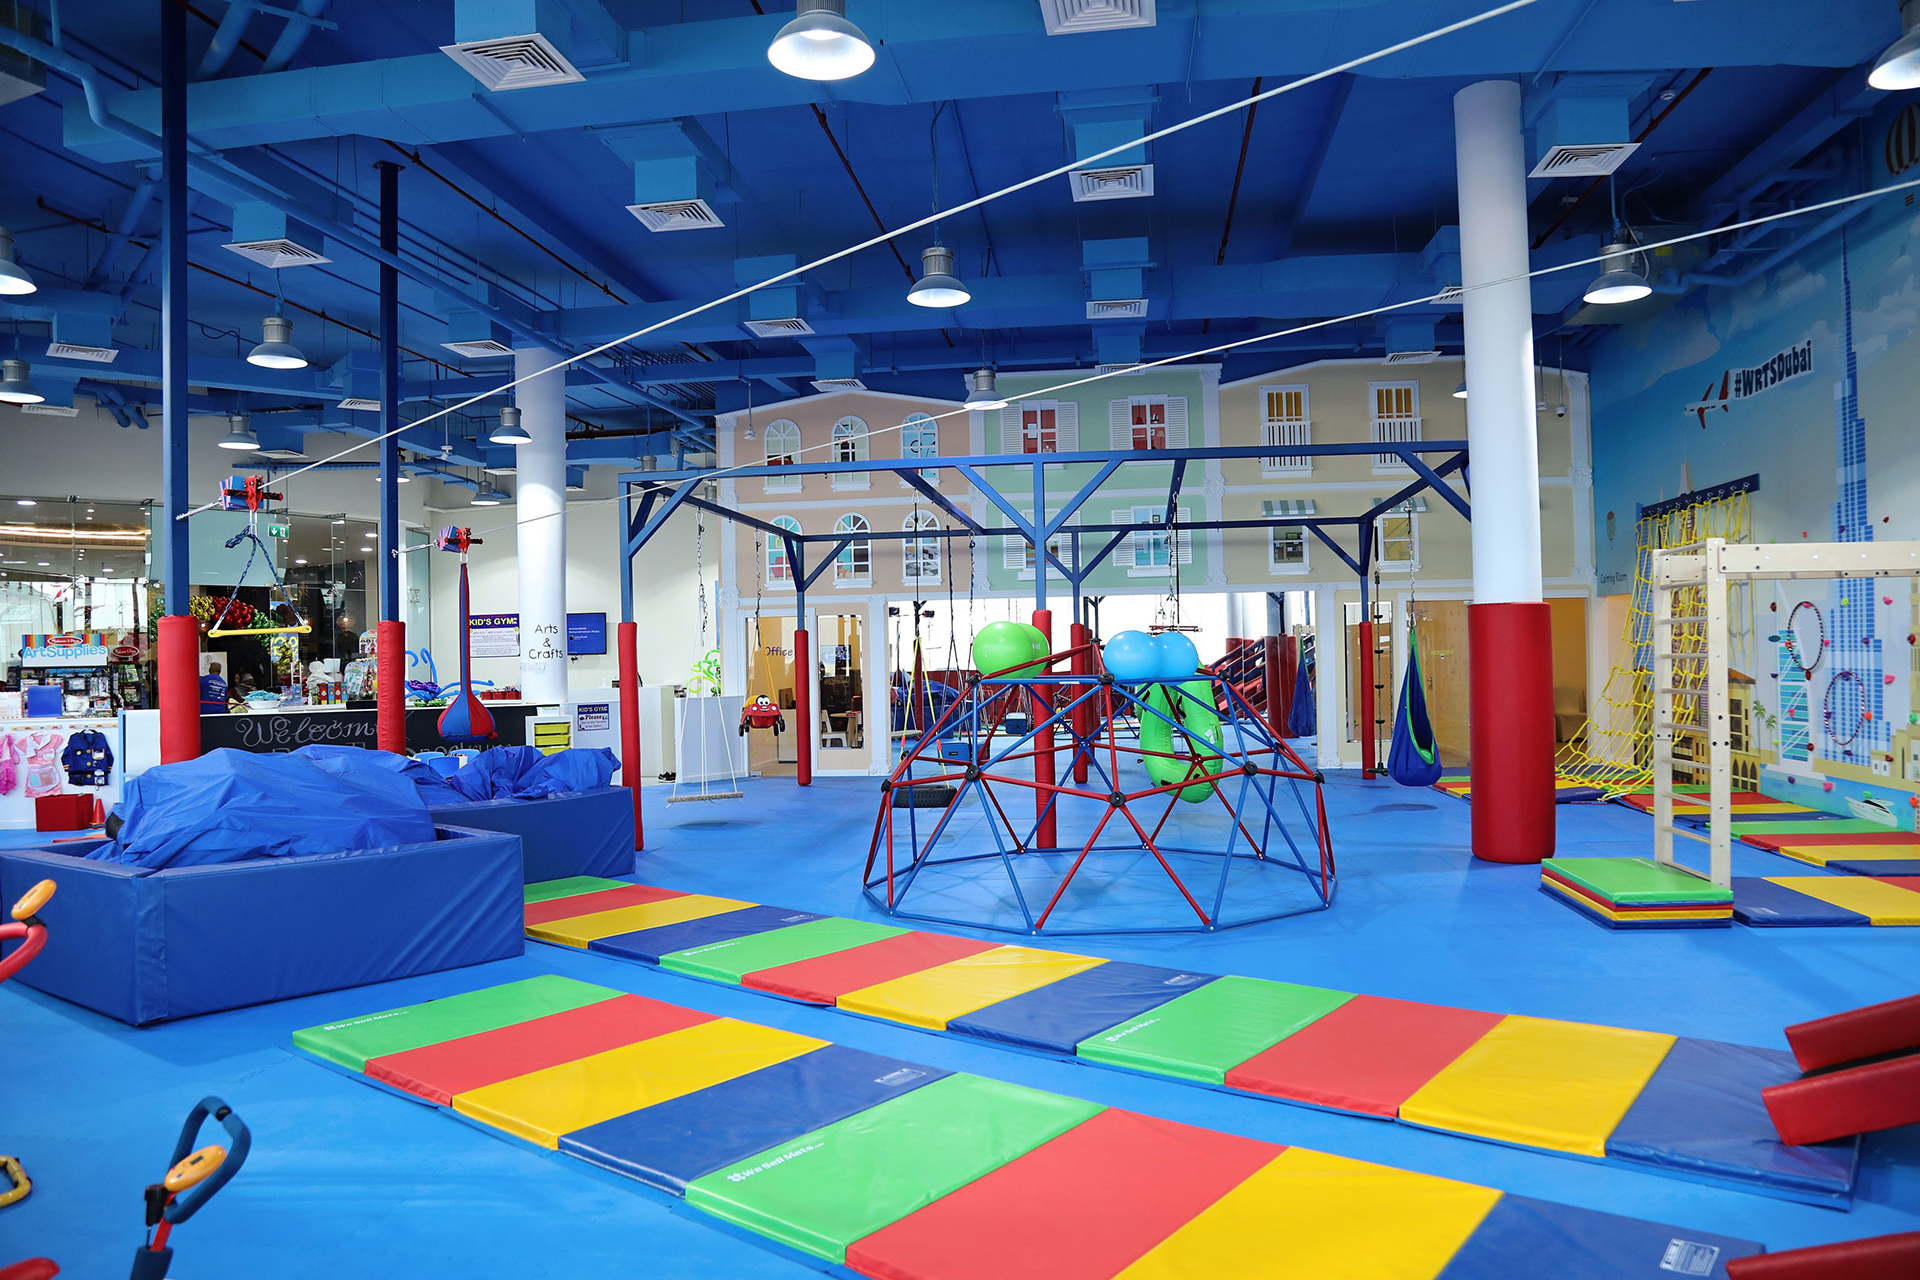 Babies Toys Dubai We Rock The Spectrum Kids 39; Gym Now Open Sports And